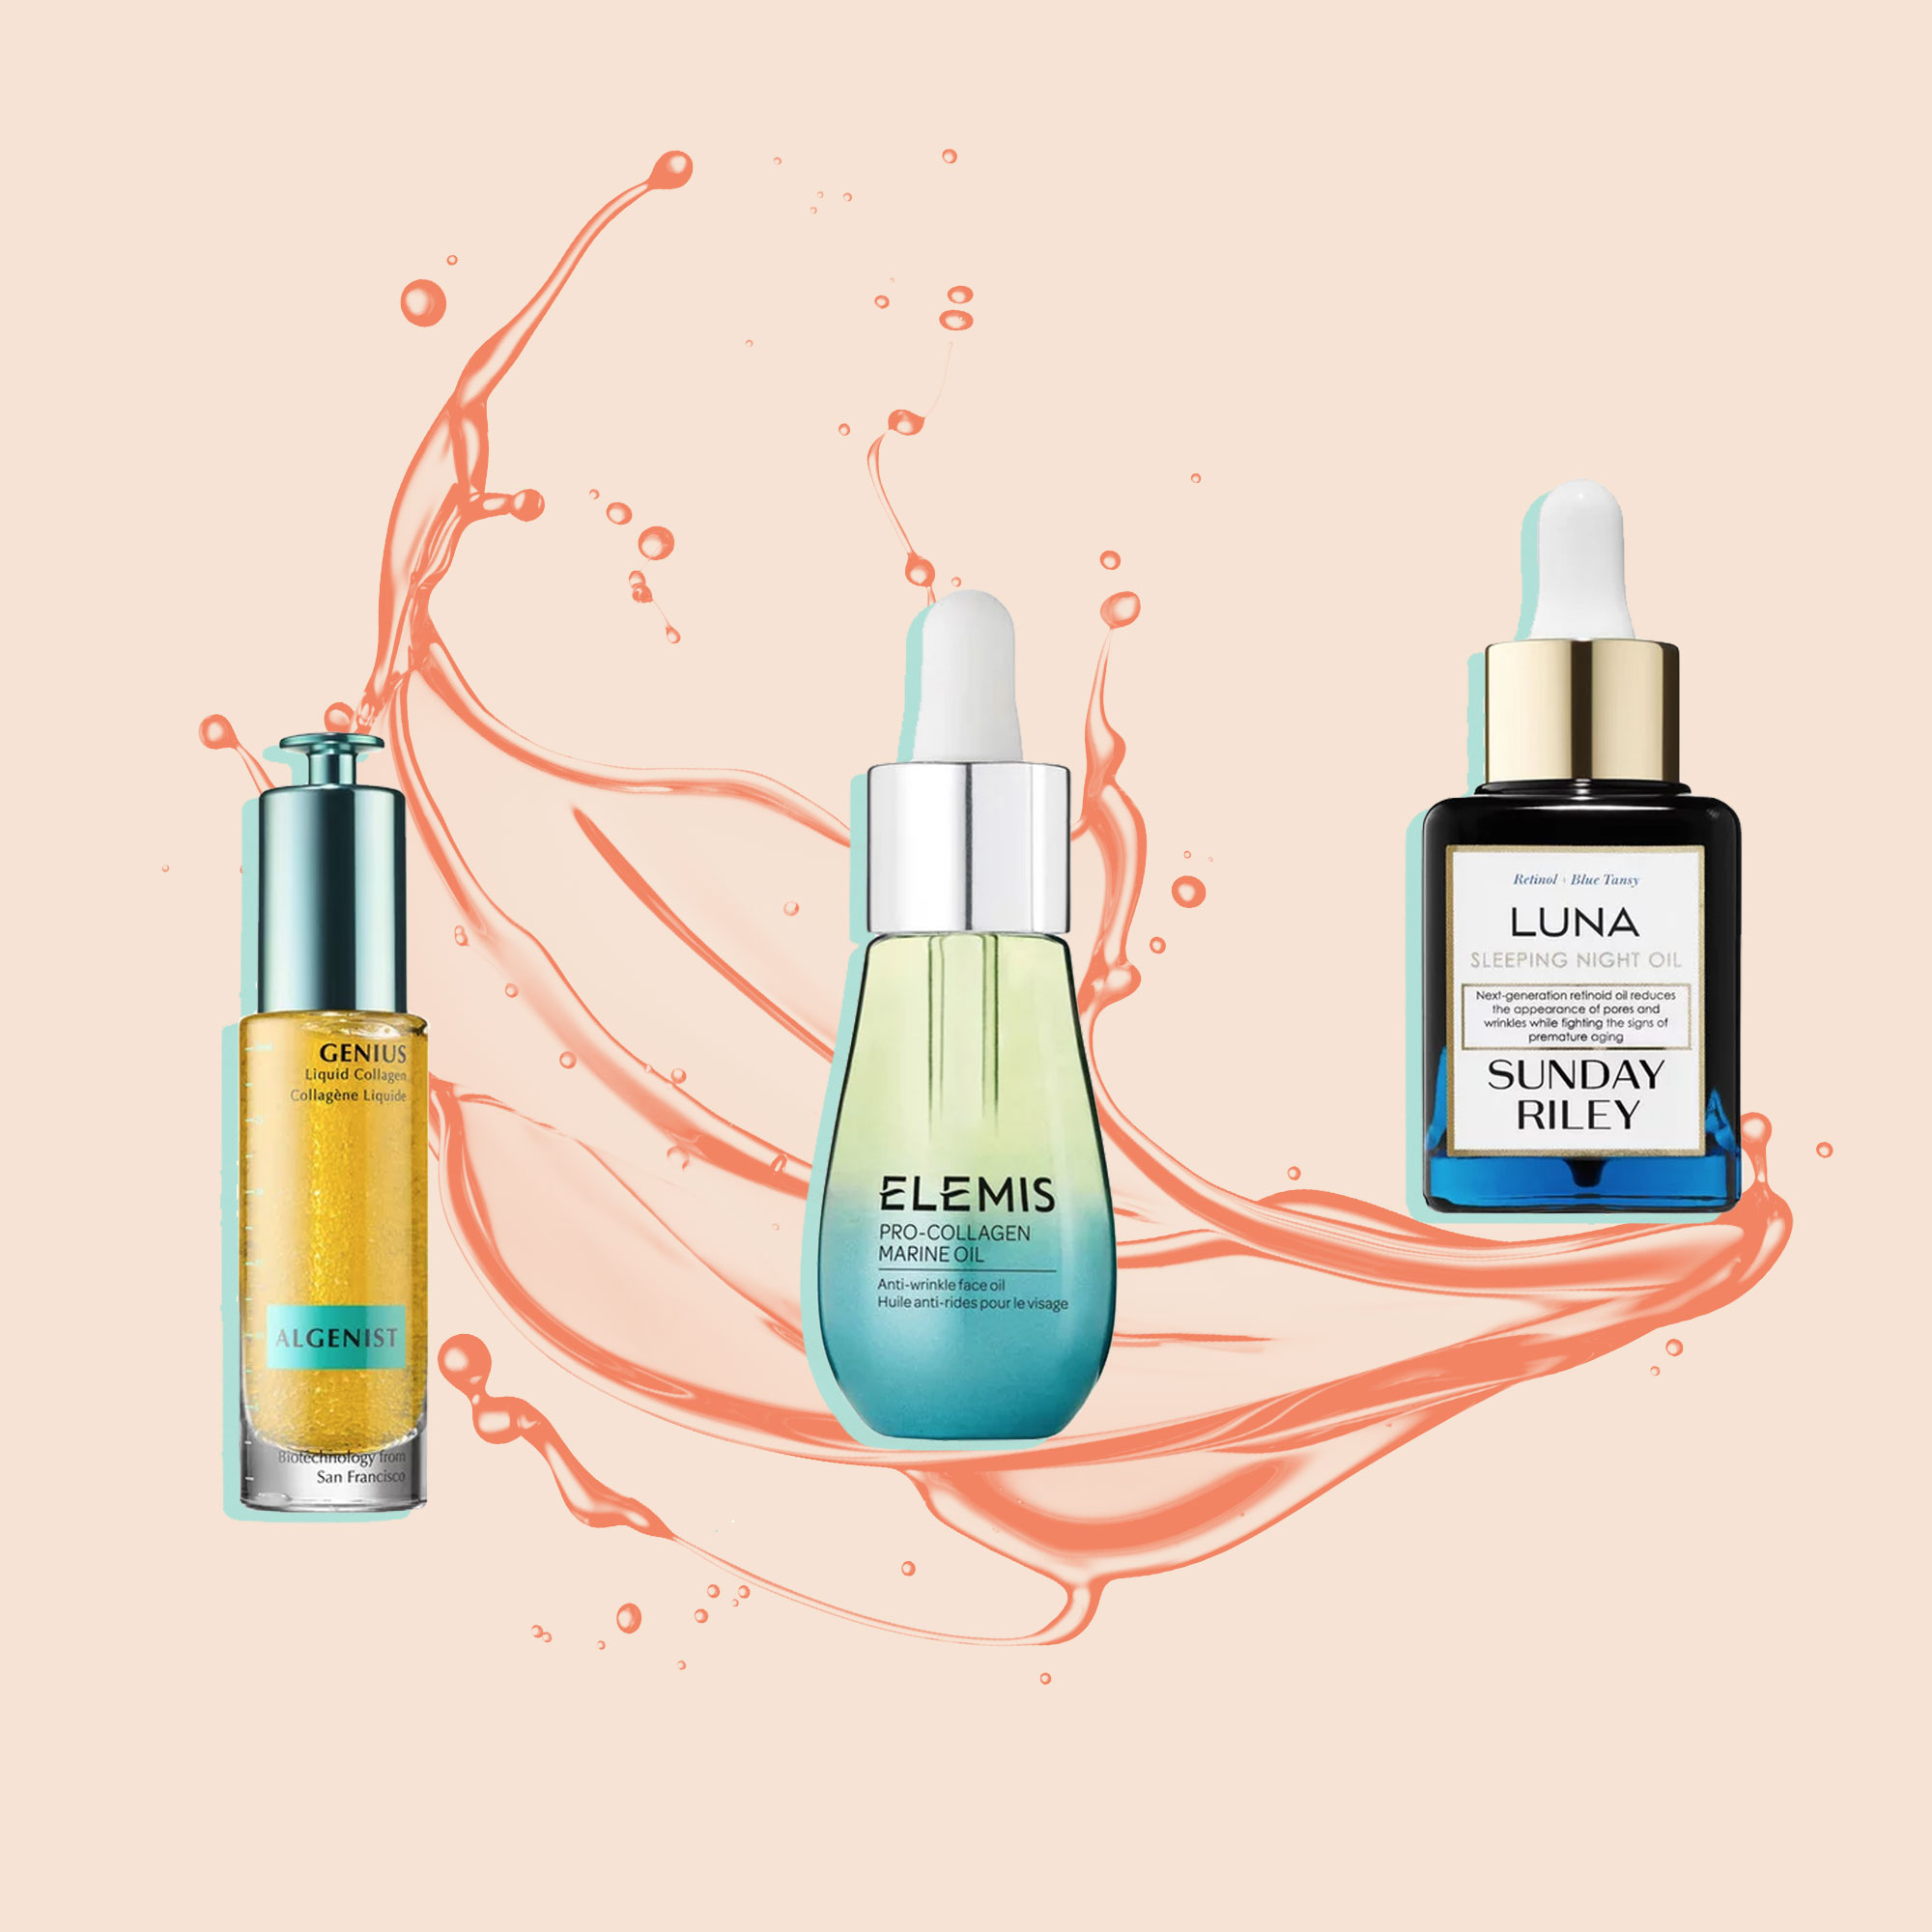 6 Anti-Aging Facial Oils to Fight Fine Lines and Wrinkles